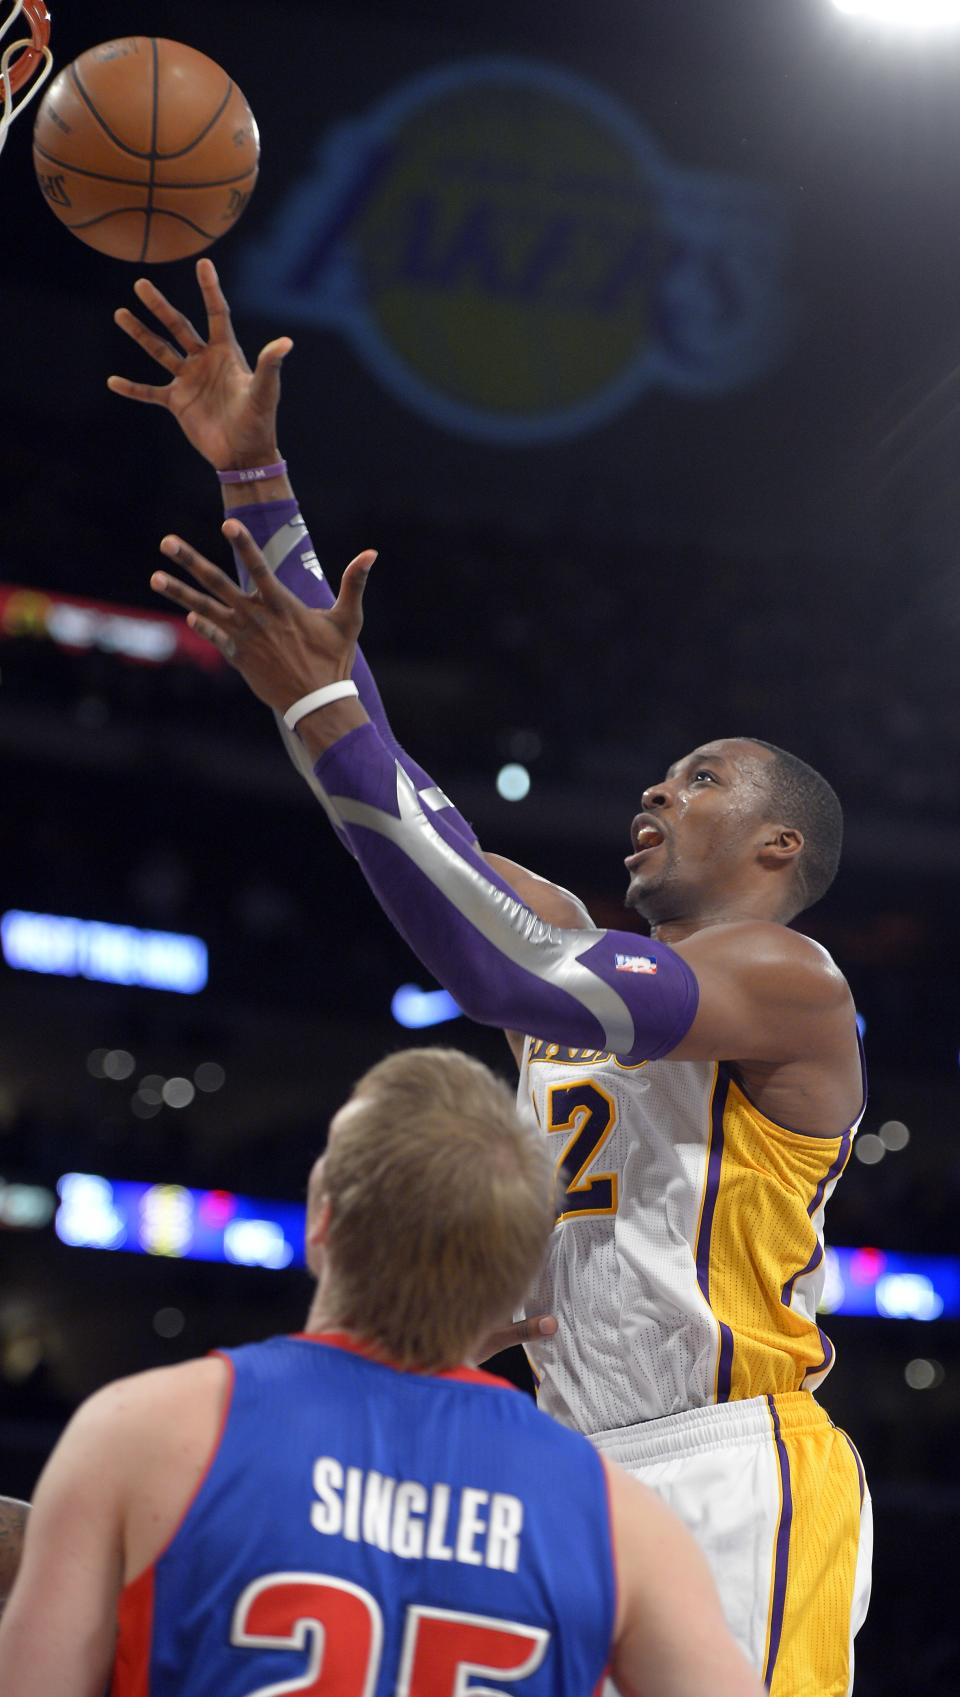 Los Angeles Lakers center Dwight Howard, right, puts up a shot as Detroit Pistons forward Kyle Singler defends during the first half of their NBA basketball game, Sunday, Nov. 4, 2012, in Los Angeles. (AP Photo/Mark J. Terrill)